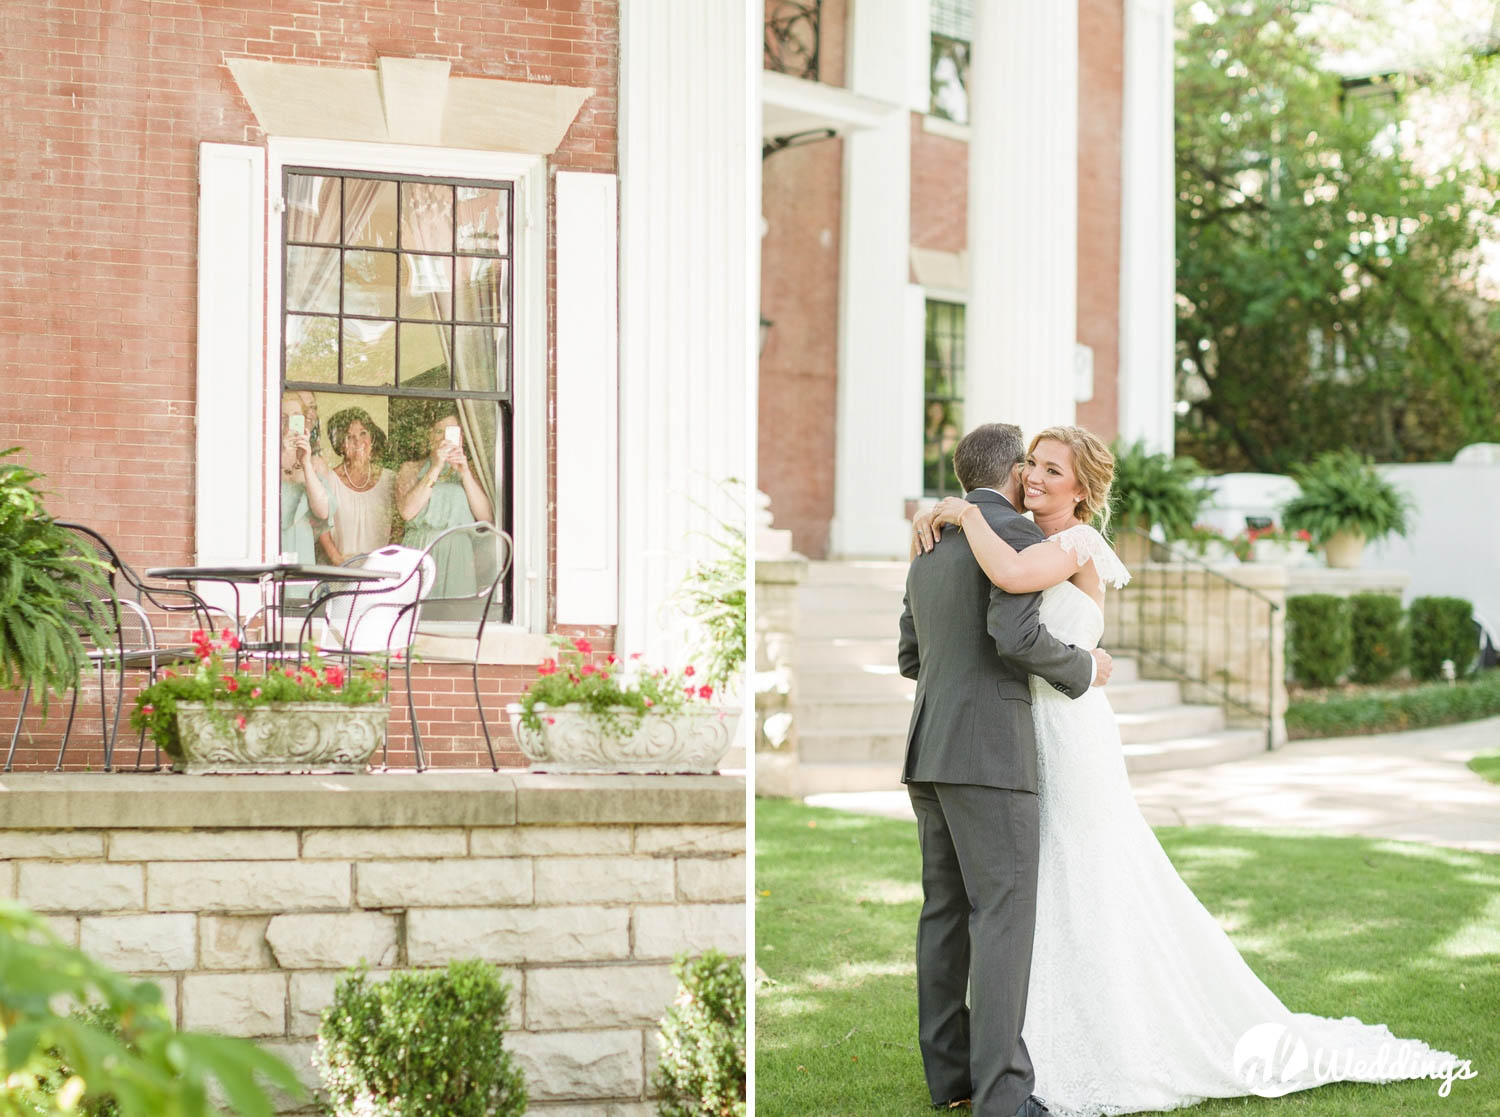 donnelly-house-wedding-downtown-birmingham-al-33